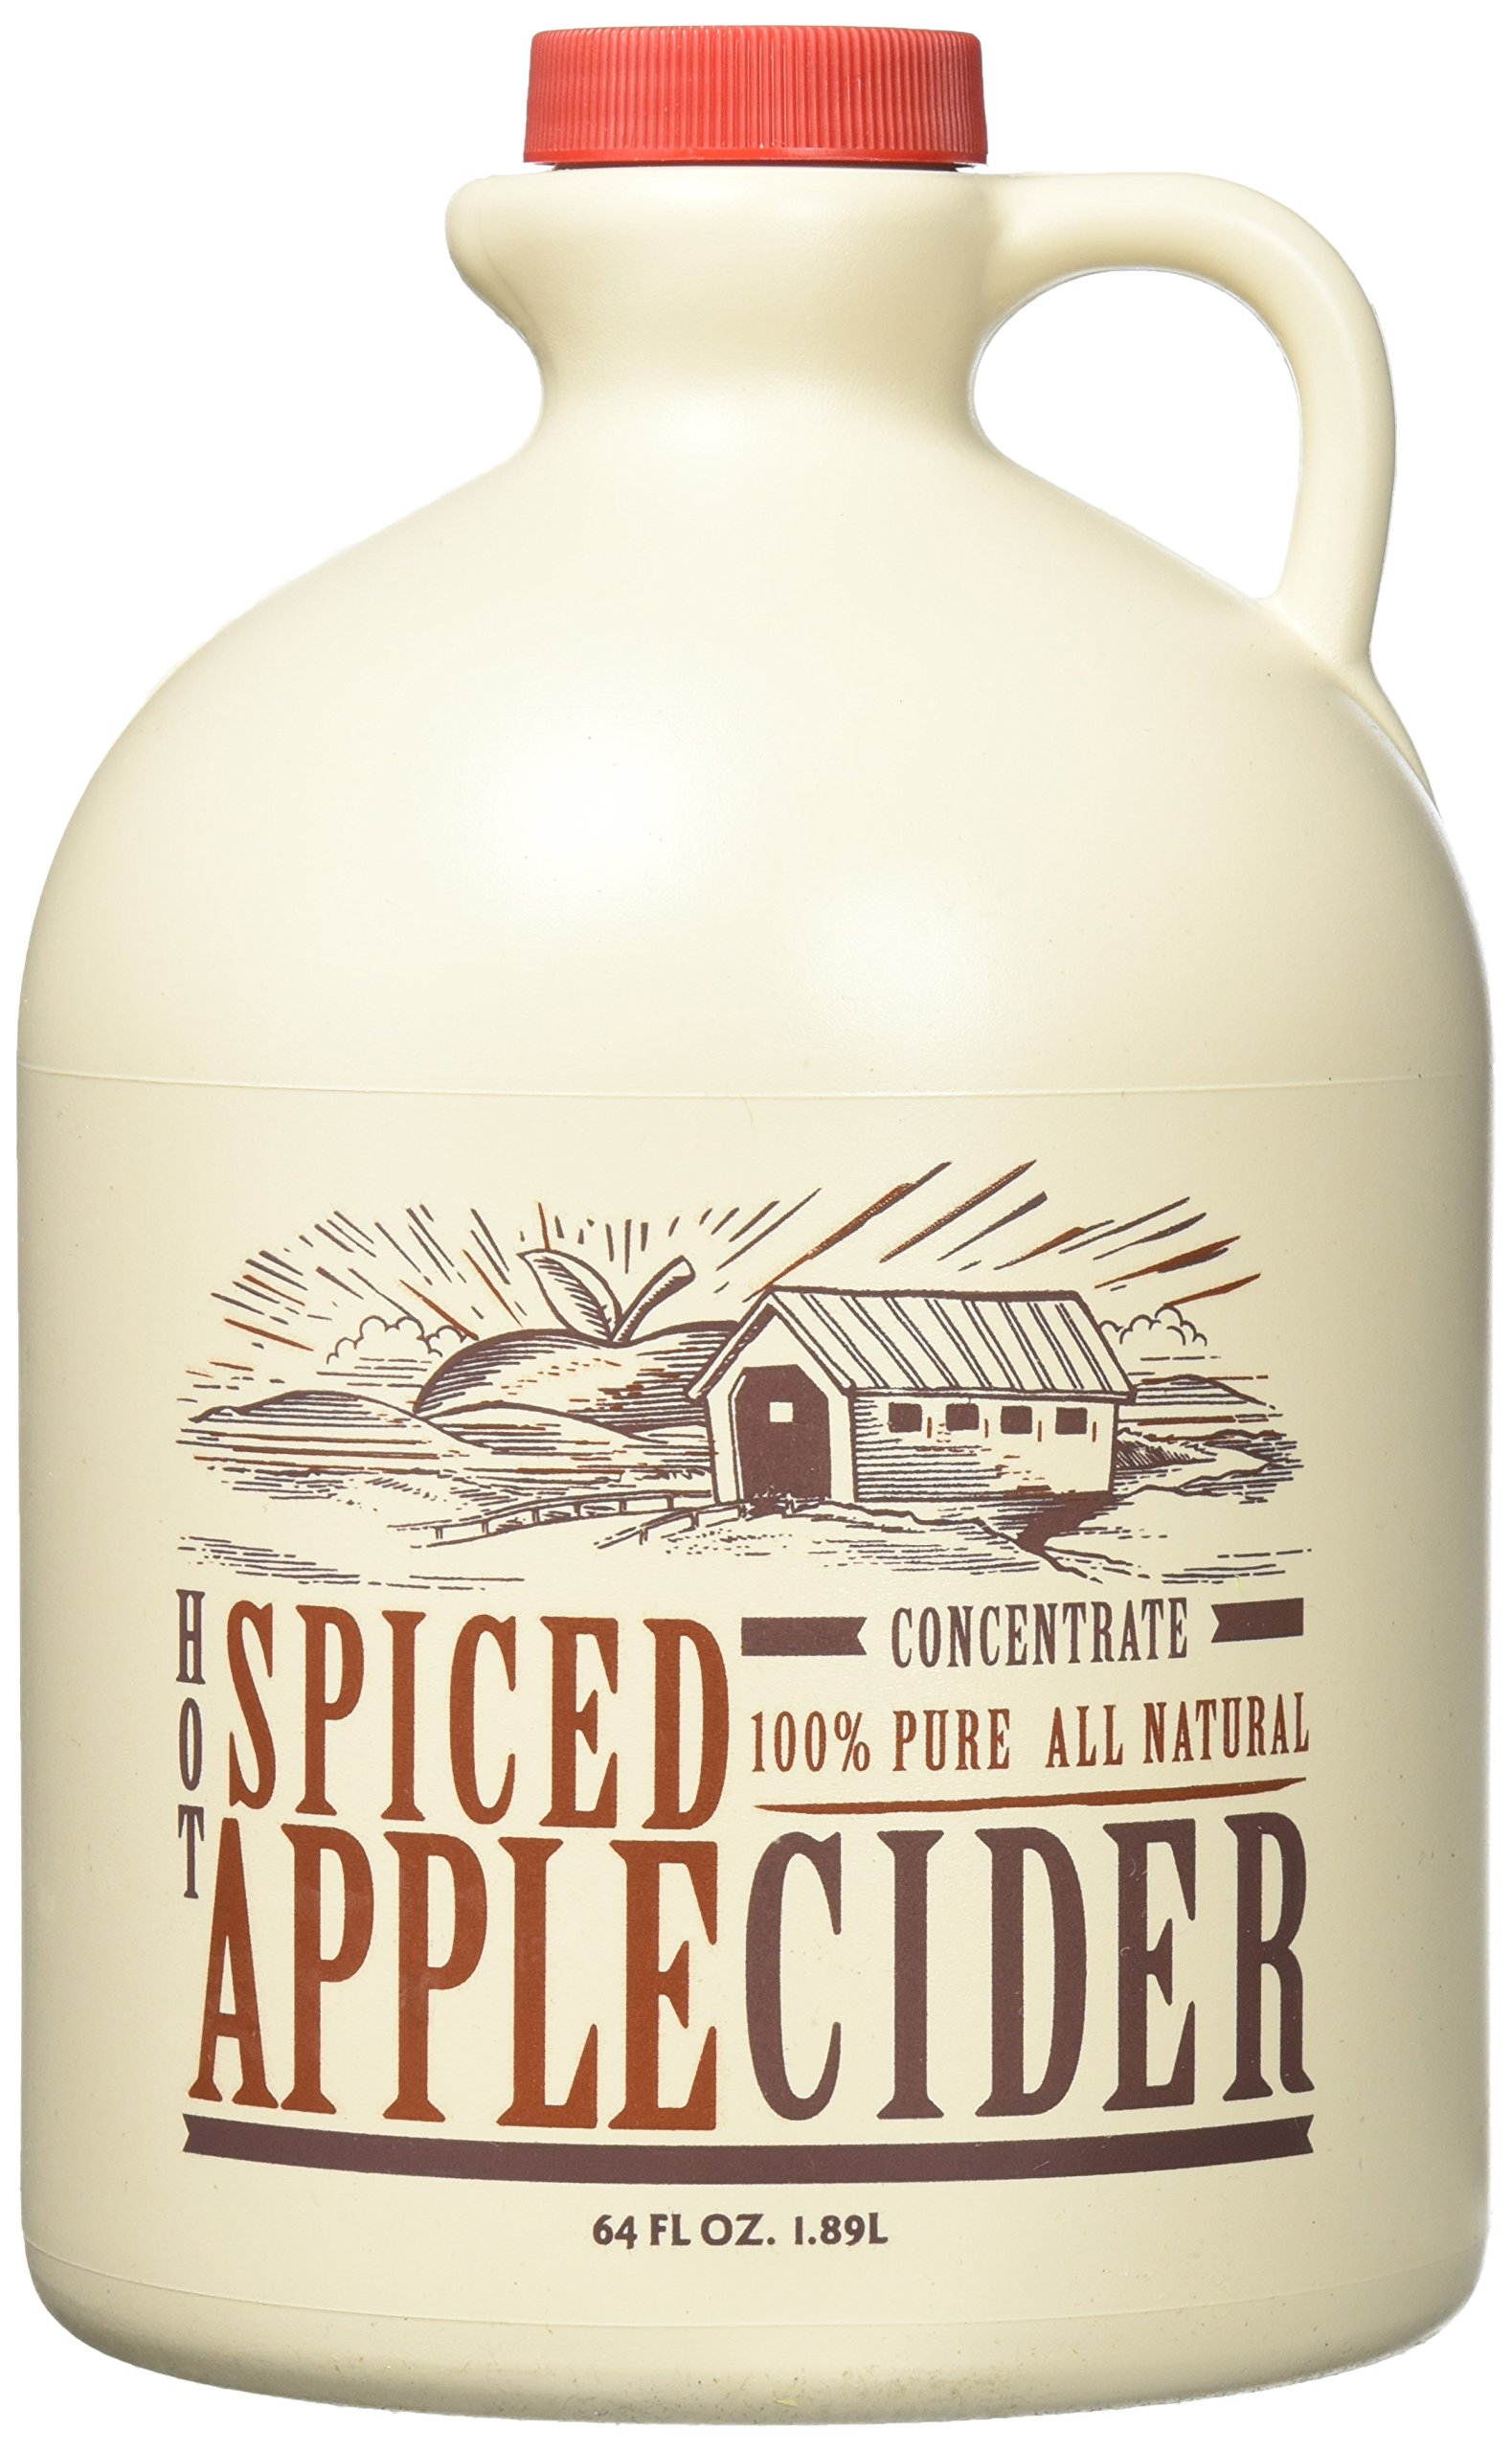 Mountain Cider Company Hot Spiced Cider Concentrate, 64 Ounce by Mountain Cider Company